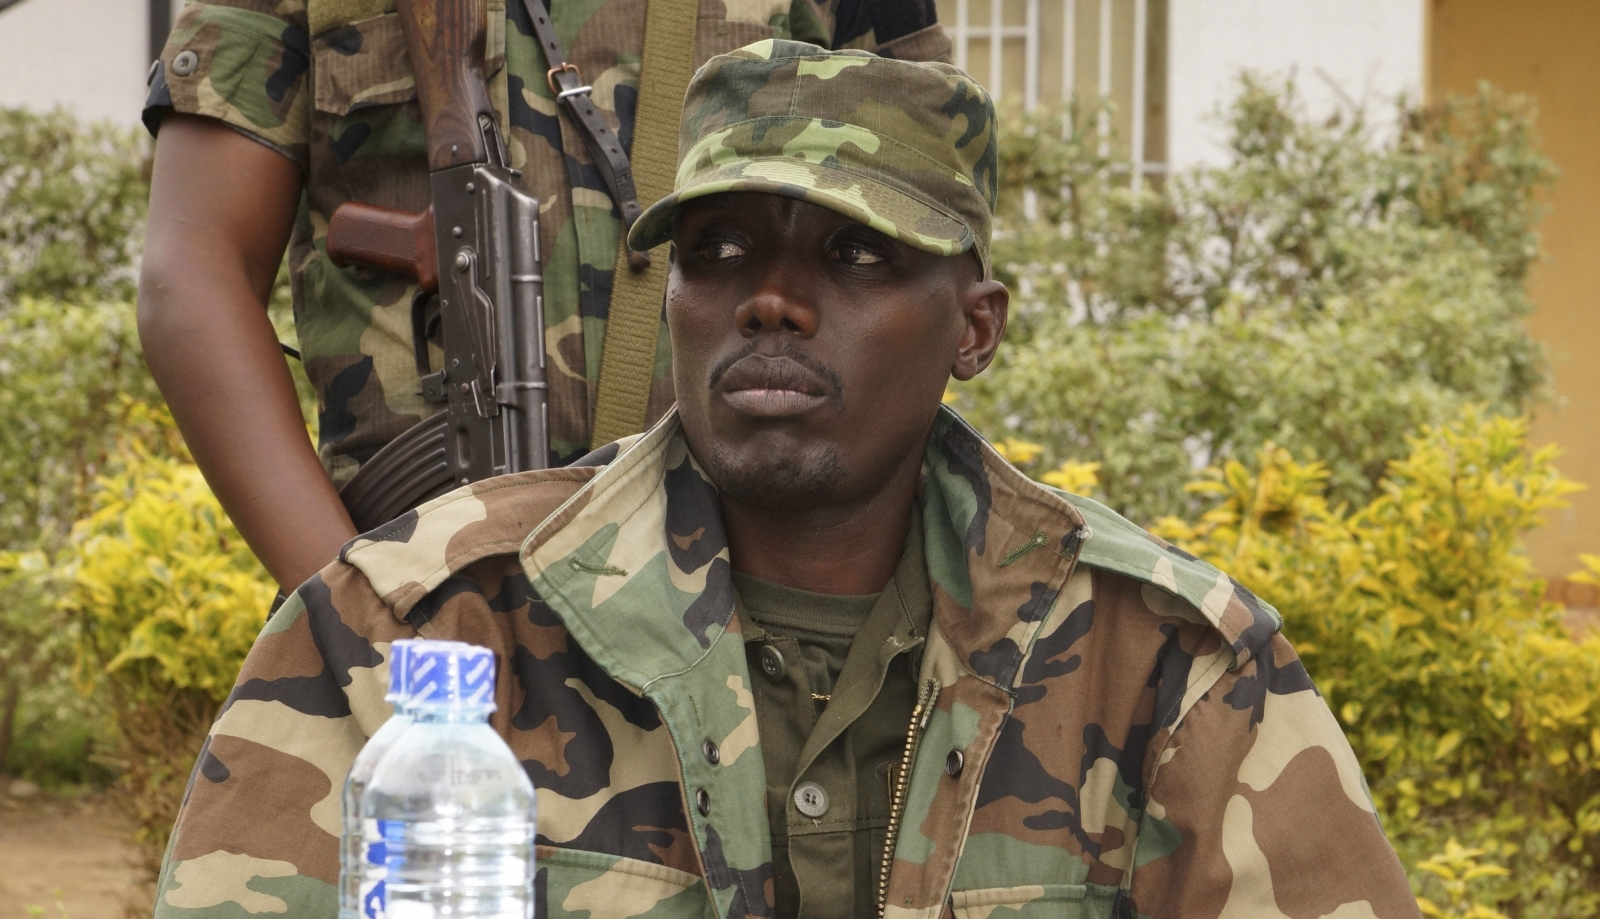 Sultani Makenga, M23 rebel leader